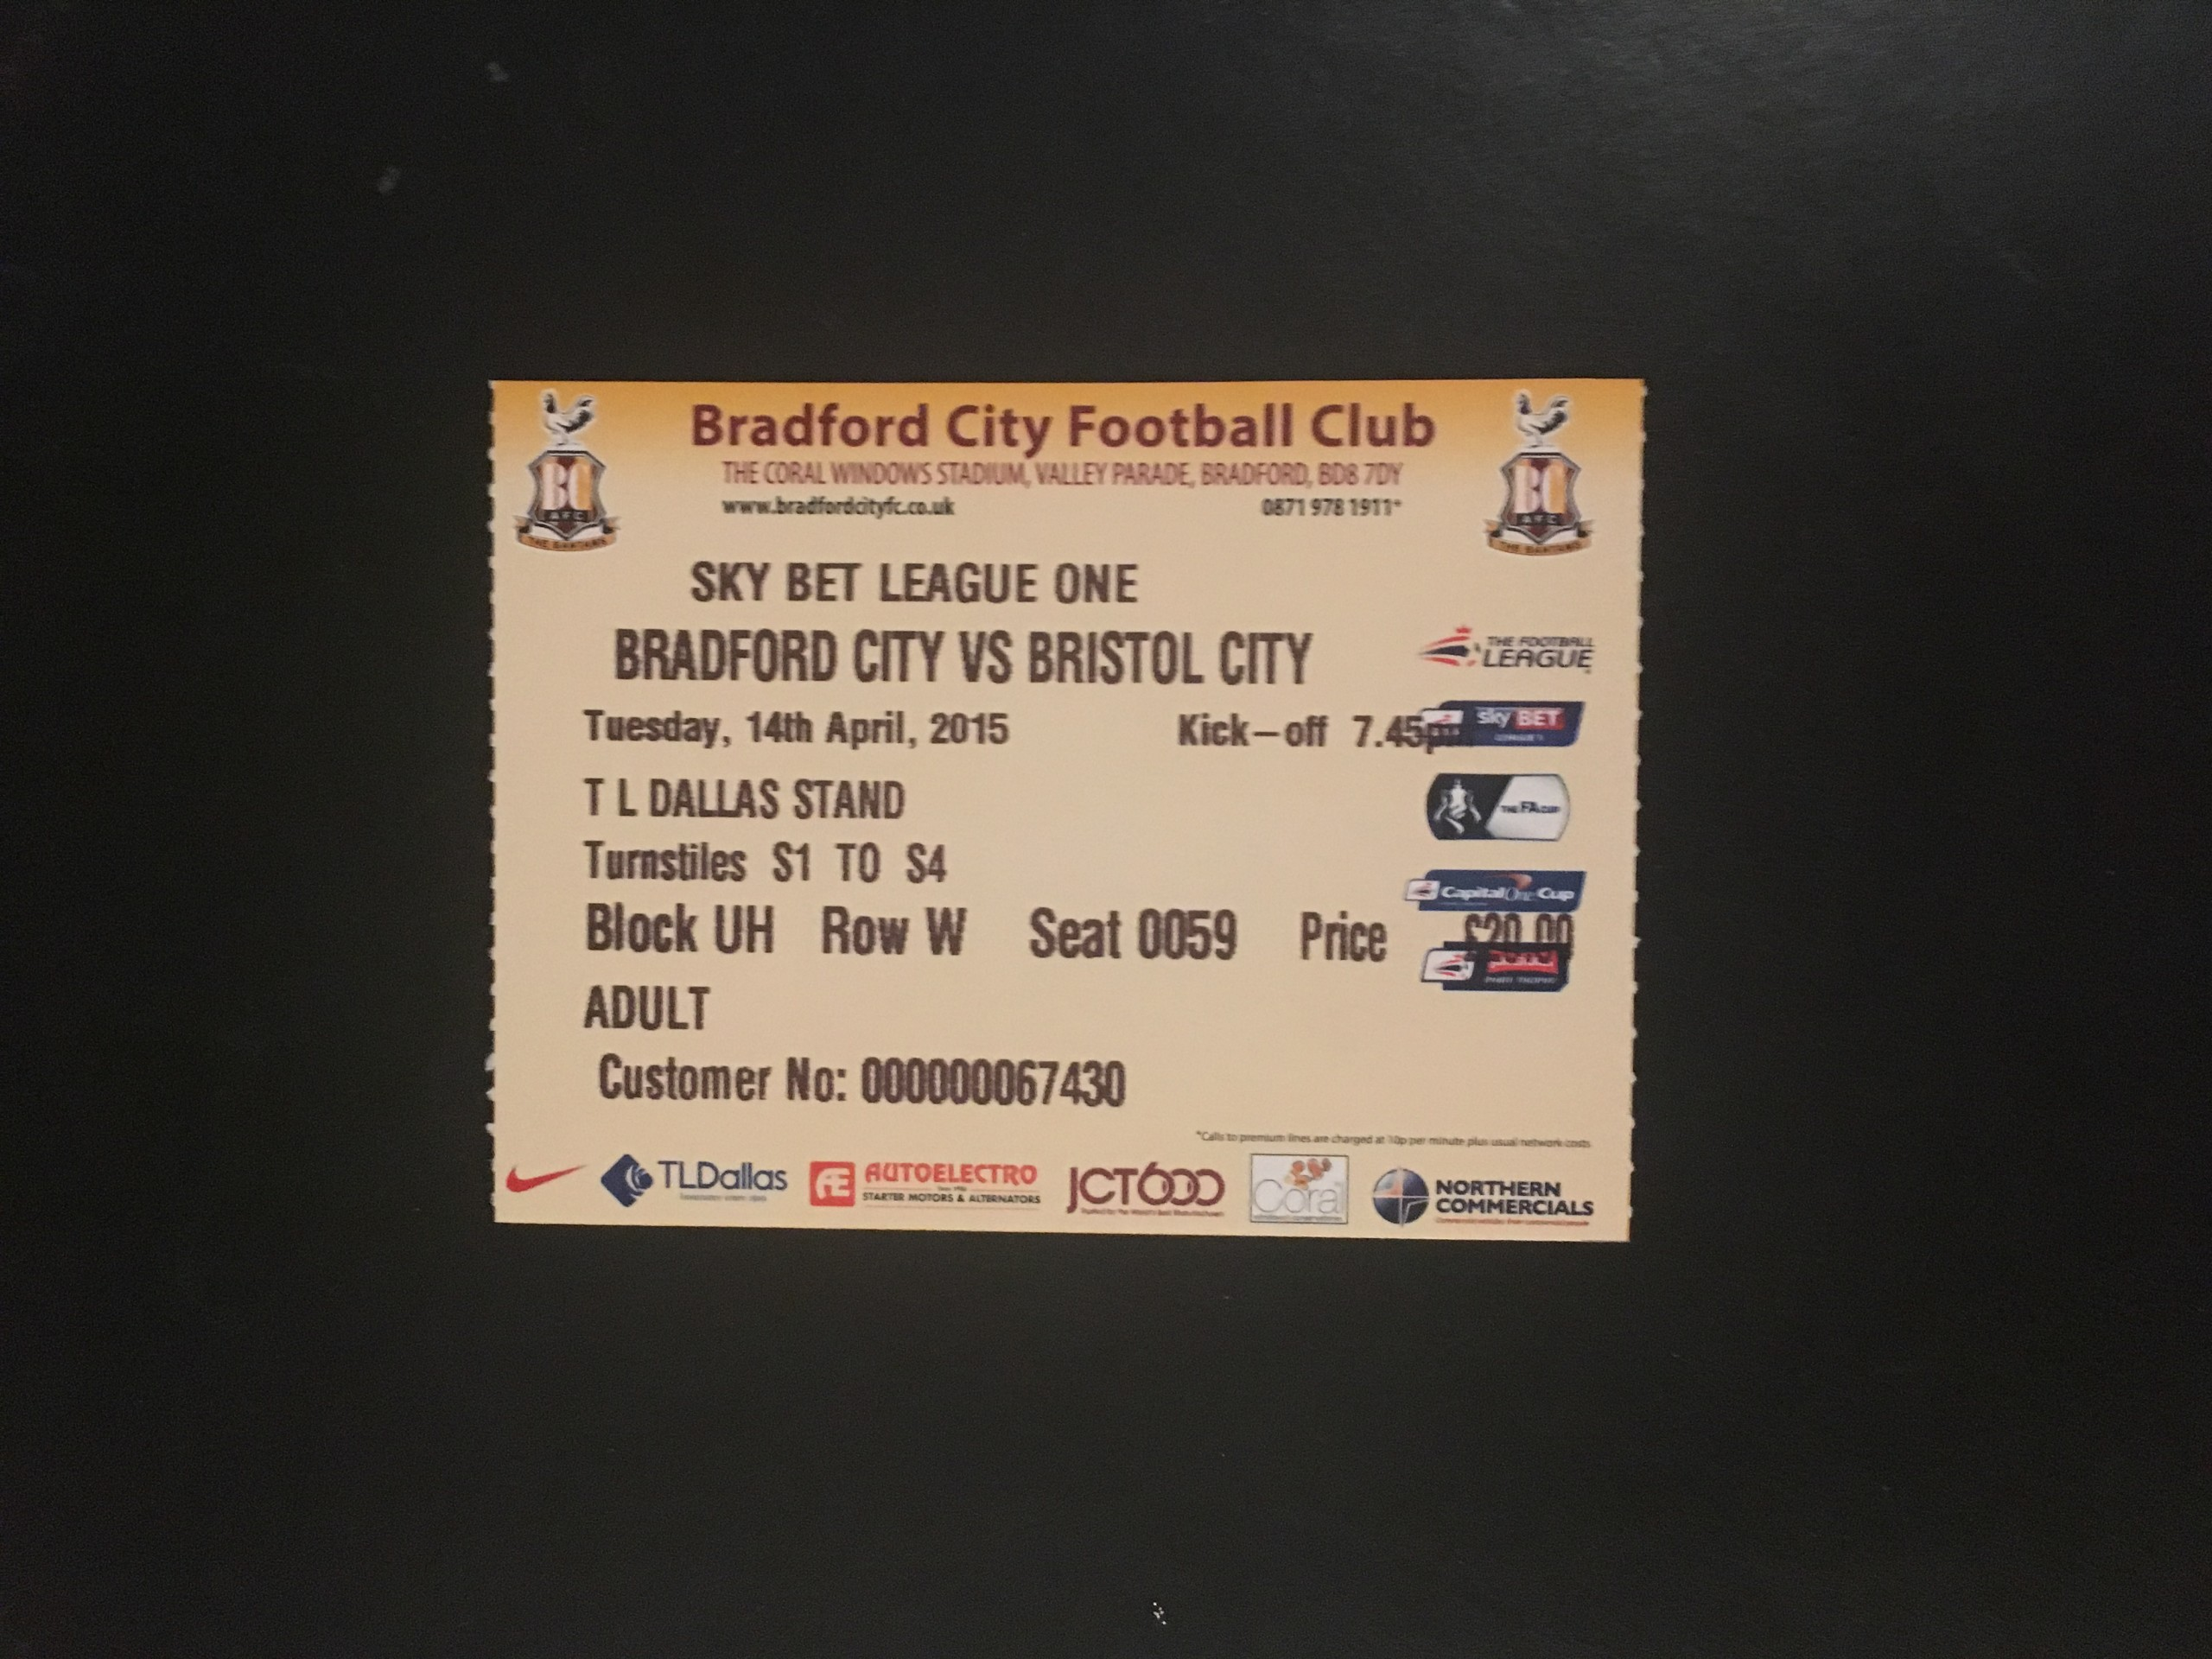 Bradford City v Bristol City 14-04-2015 Ticket